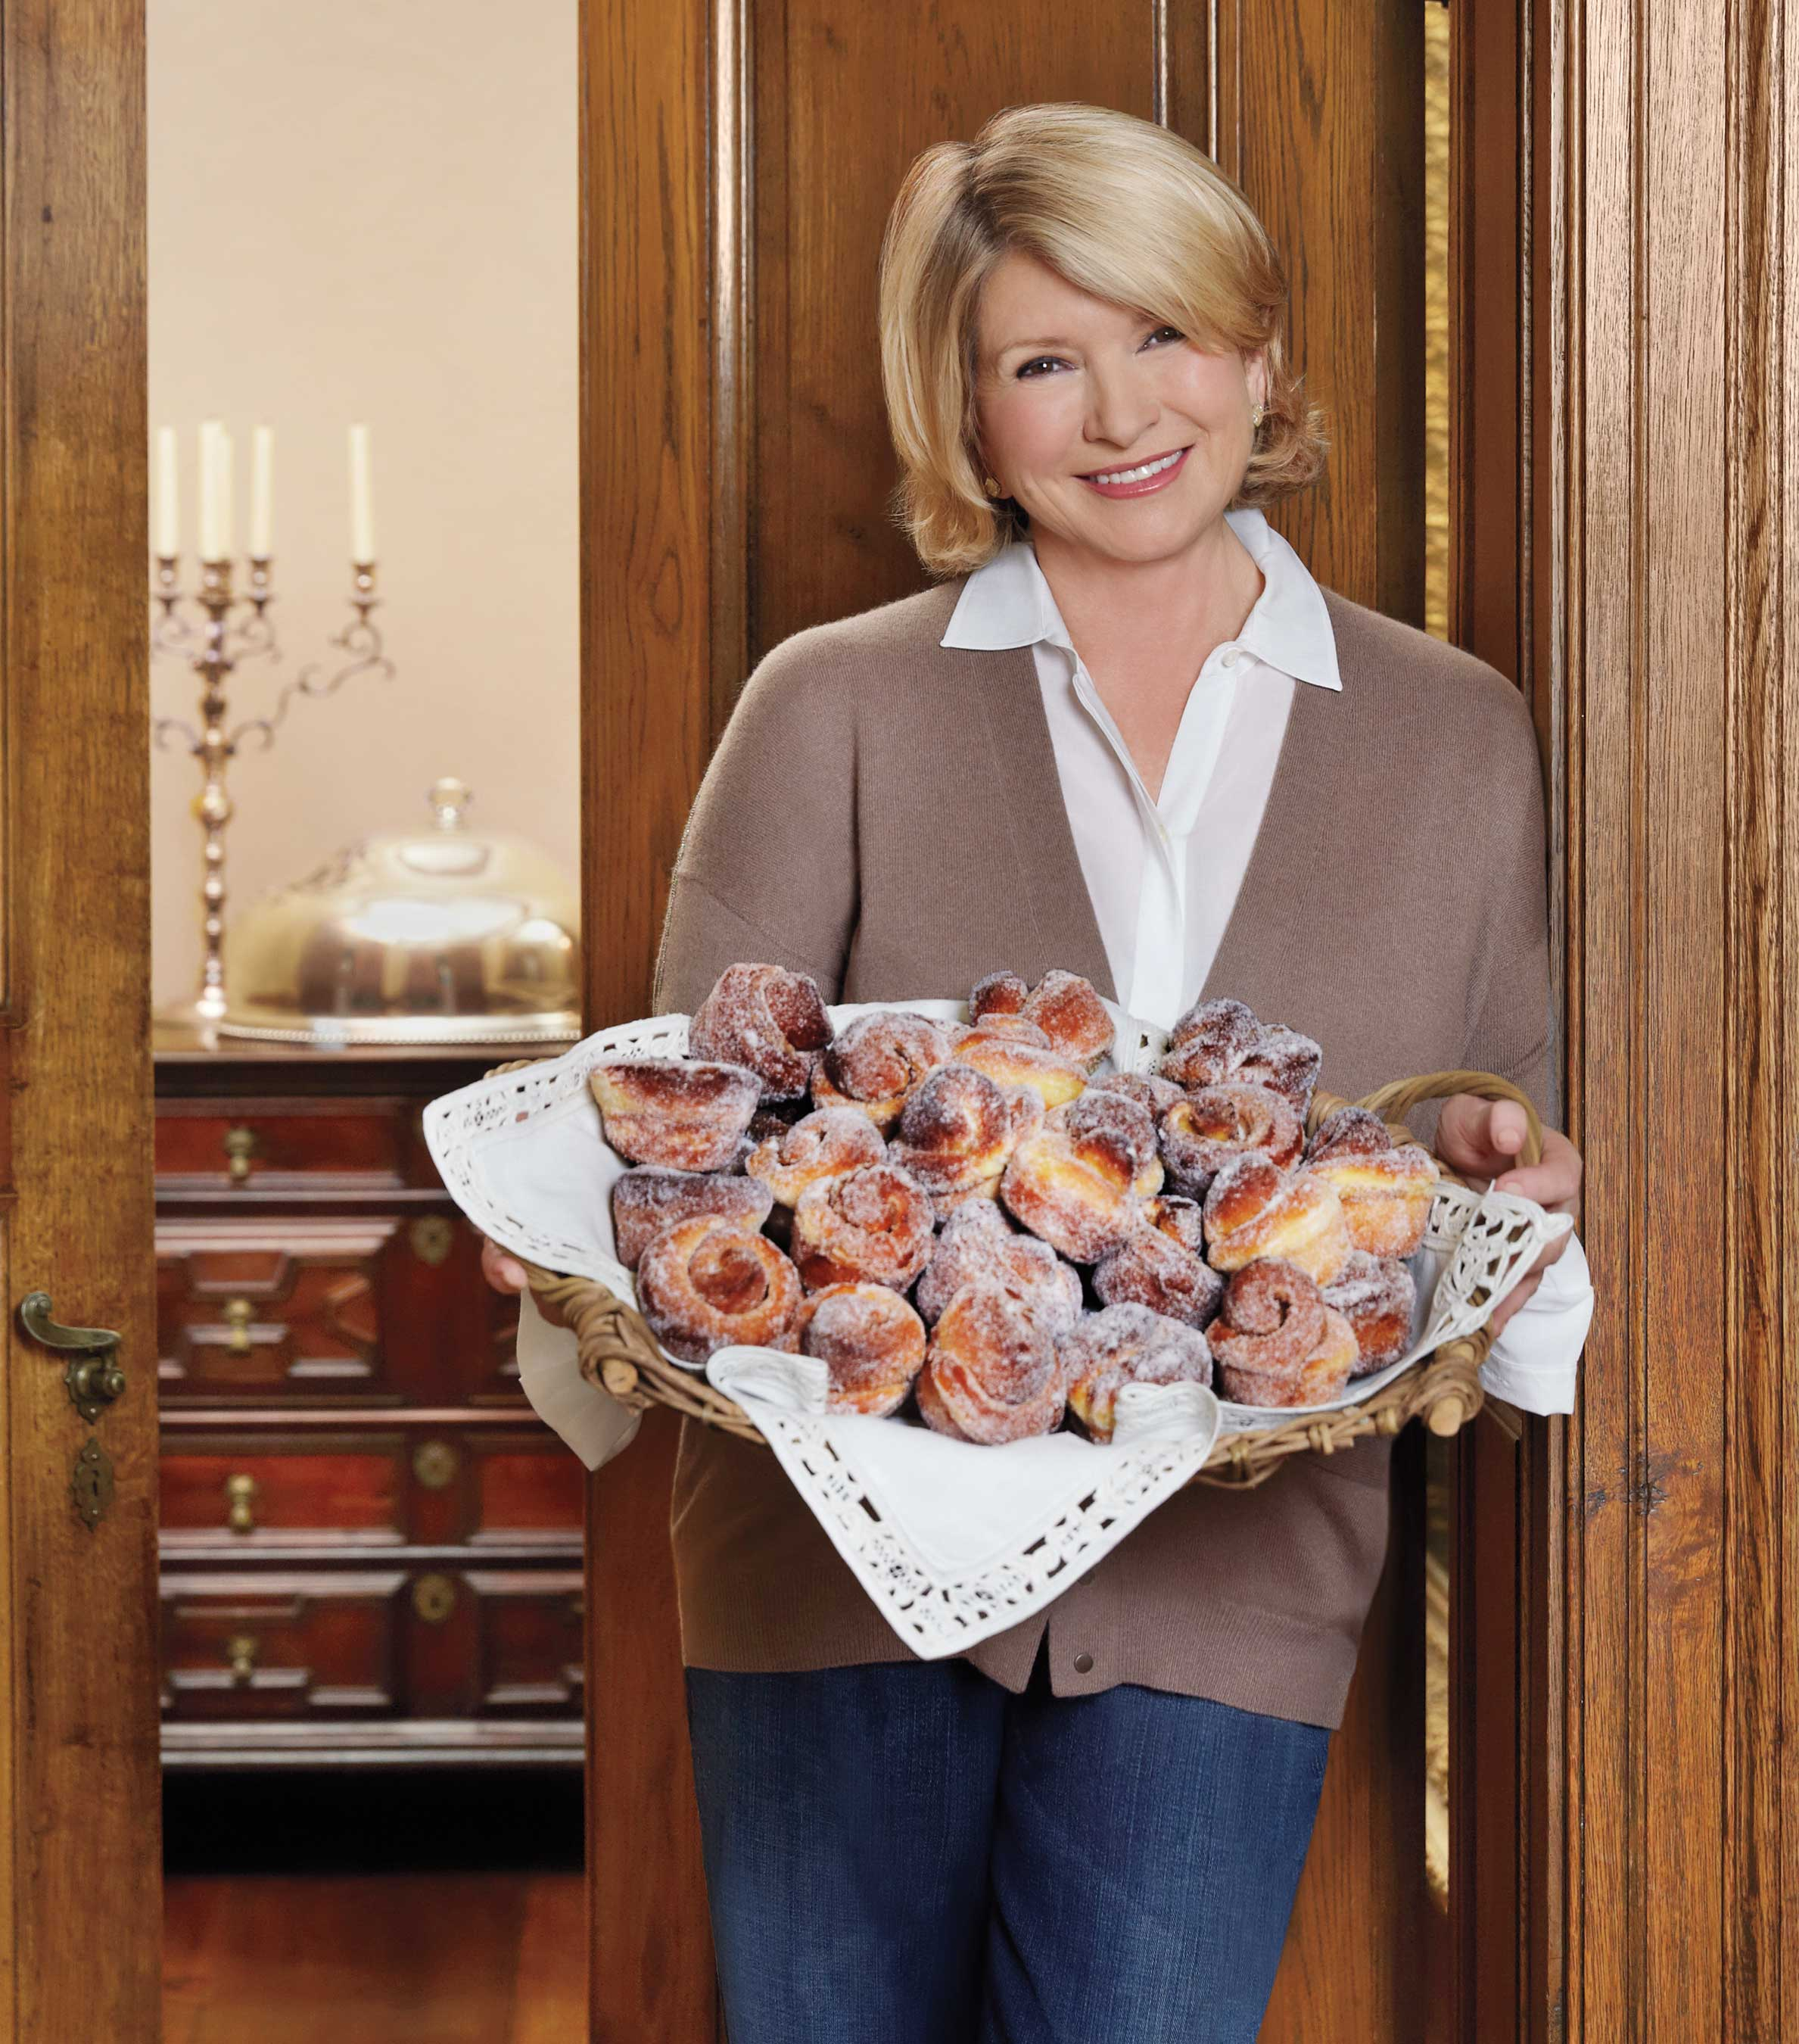 http://www.multivu.com/players/English/7396451-martha-stewart-offers-ideas-inspirations-products-for-festive-2014-holiday-season/gallery/image/28474e57-5fcb-4006-88c9-23001e985178.HR.jpg